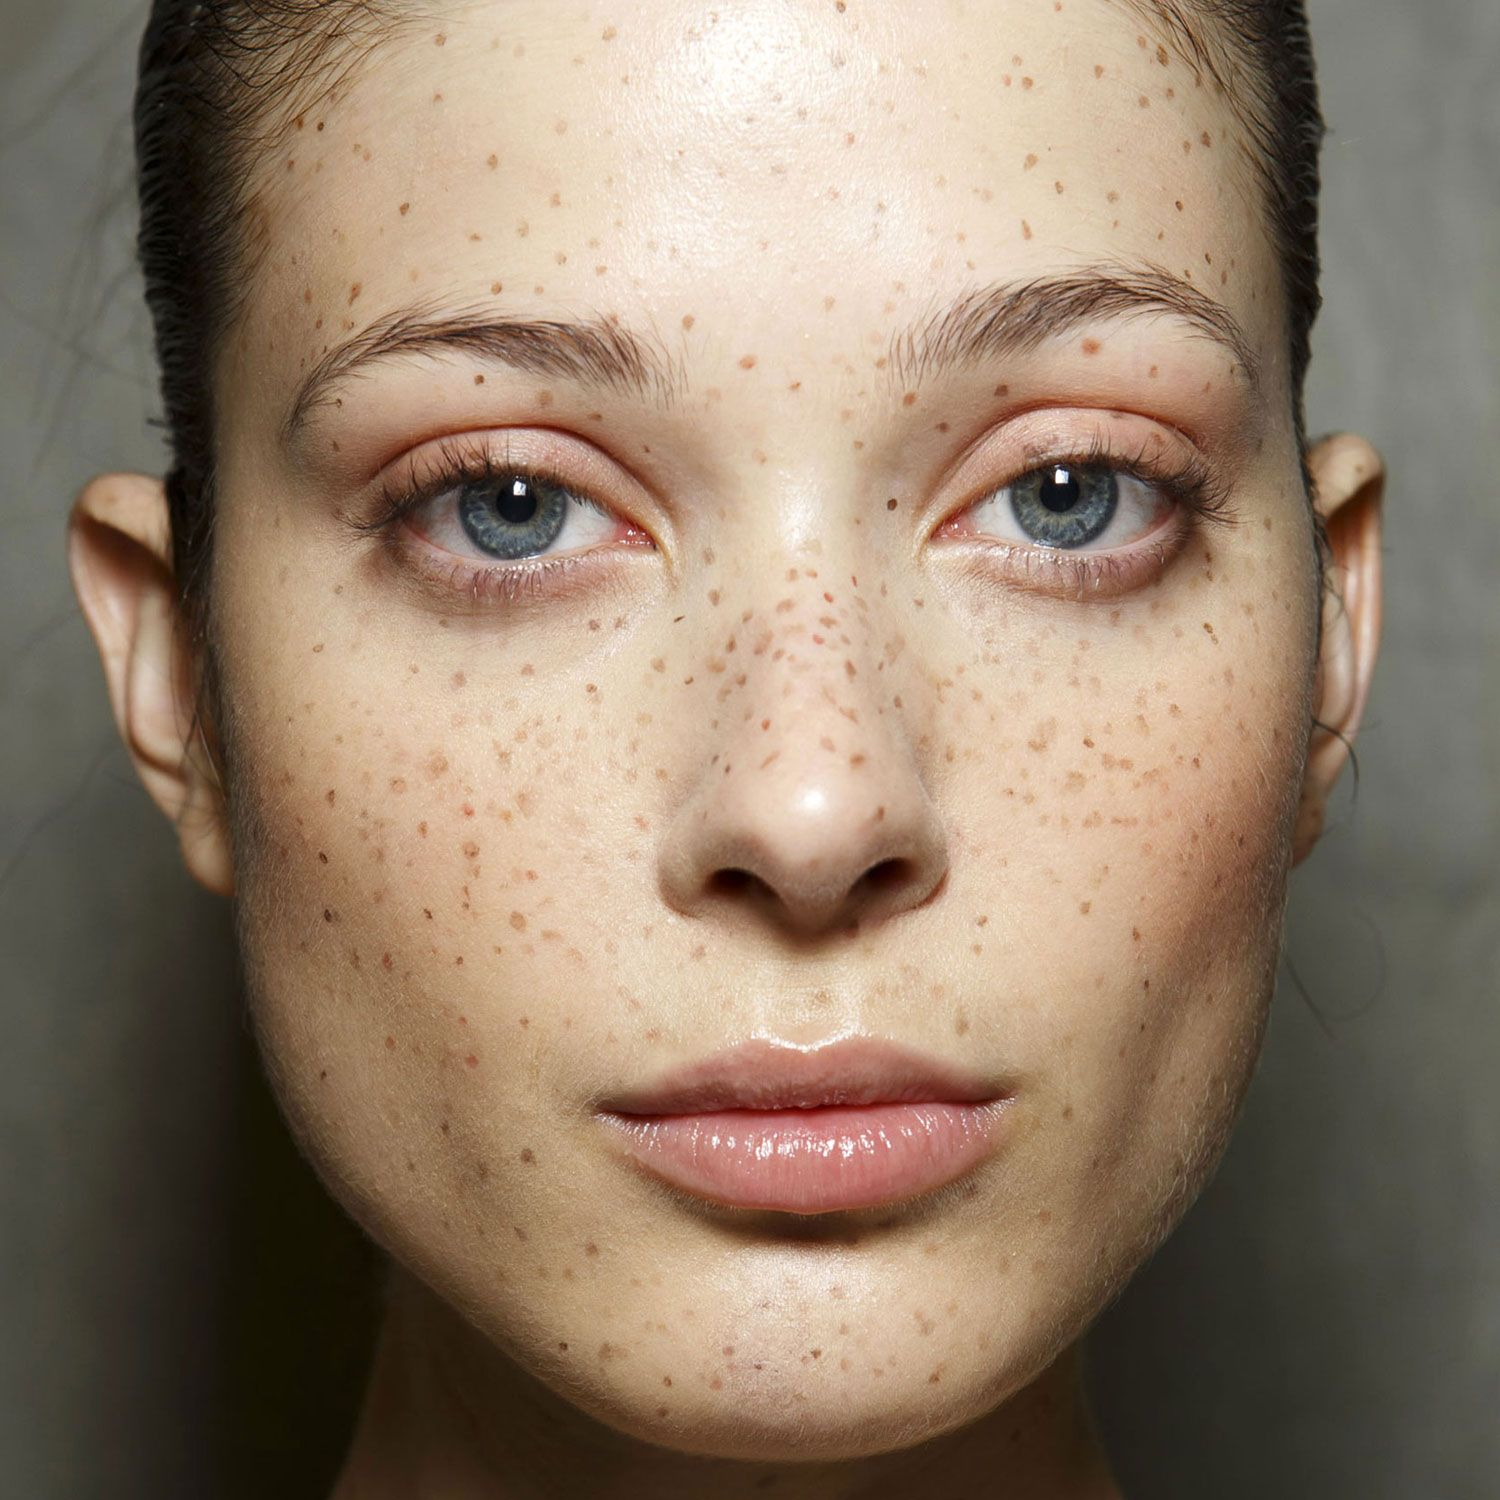 Freckles On Face | www...